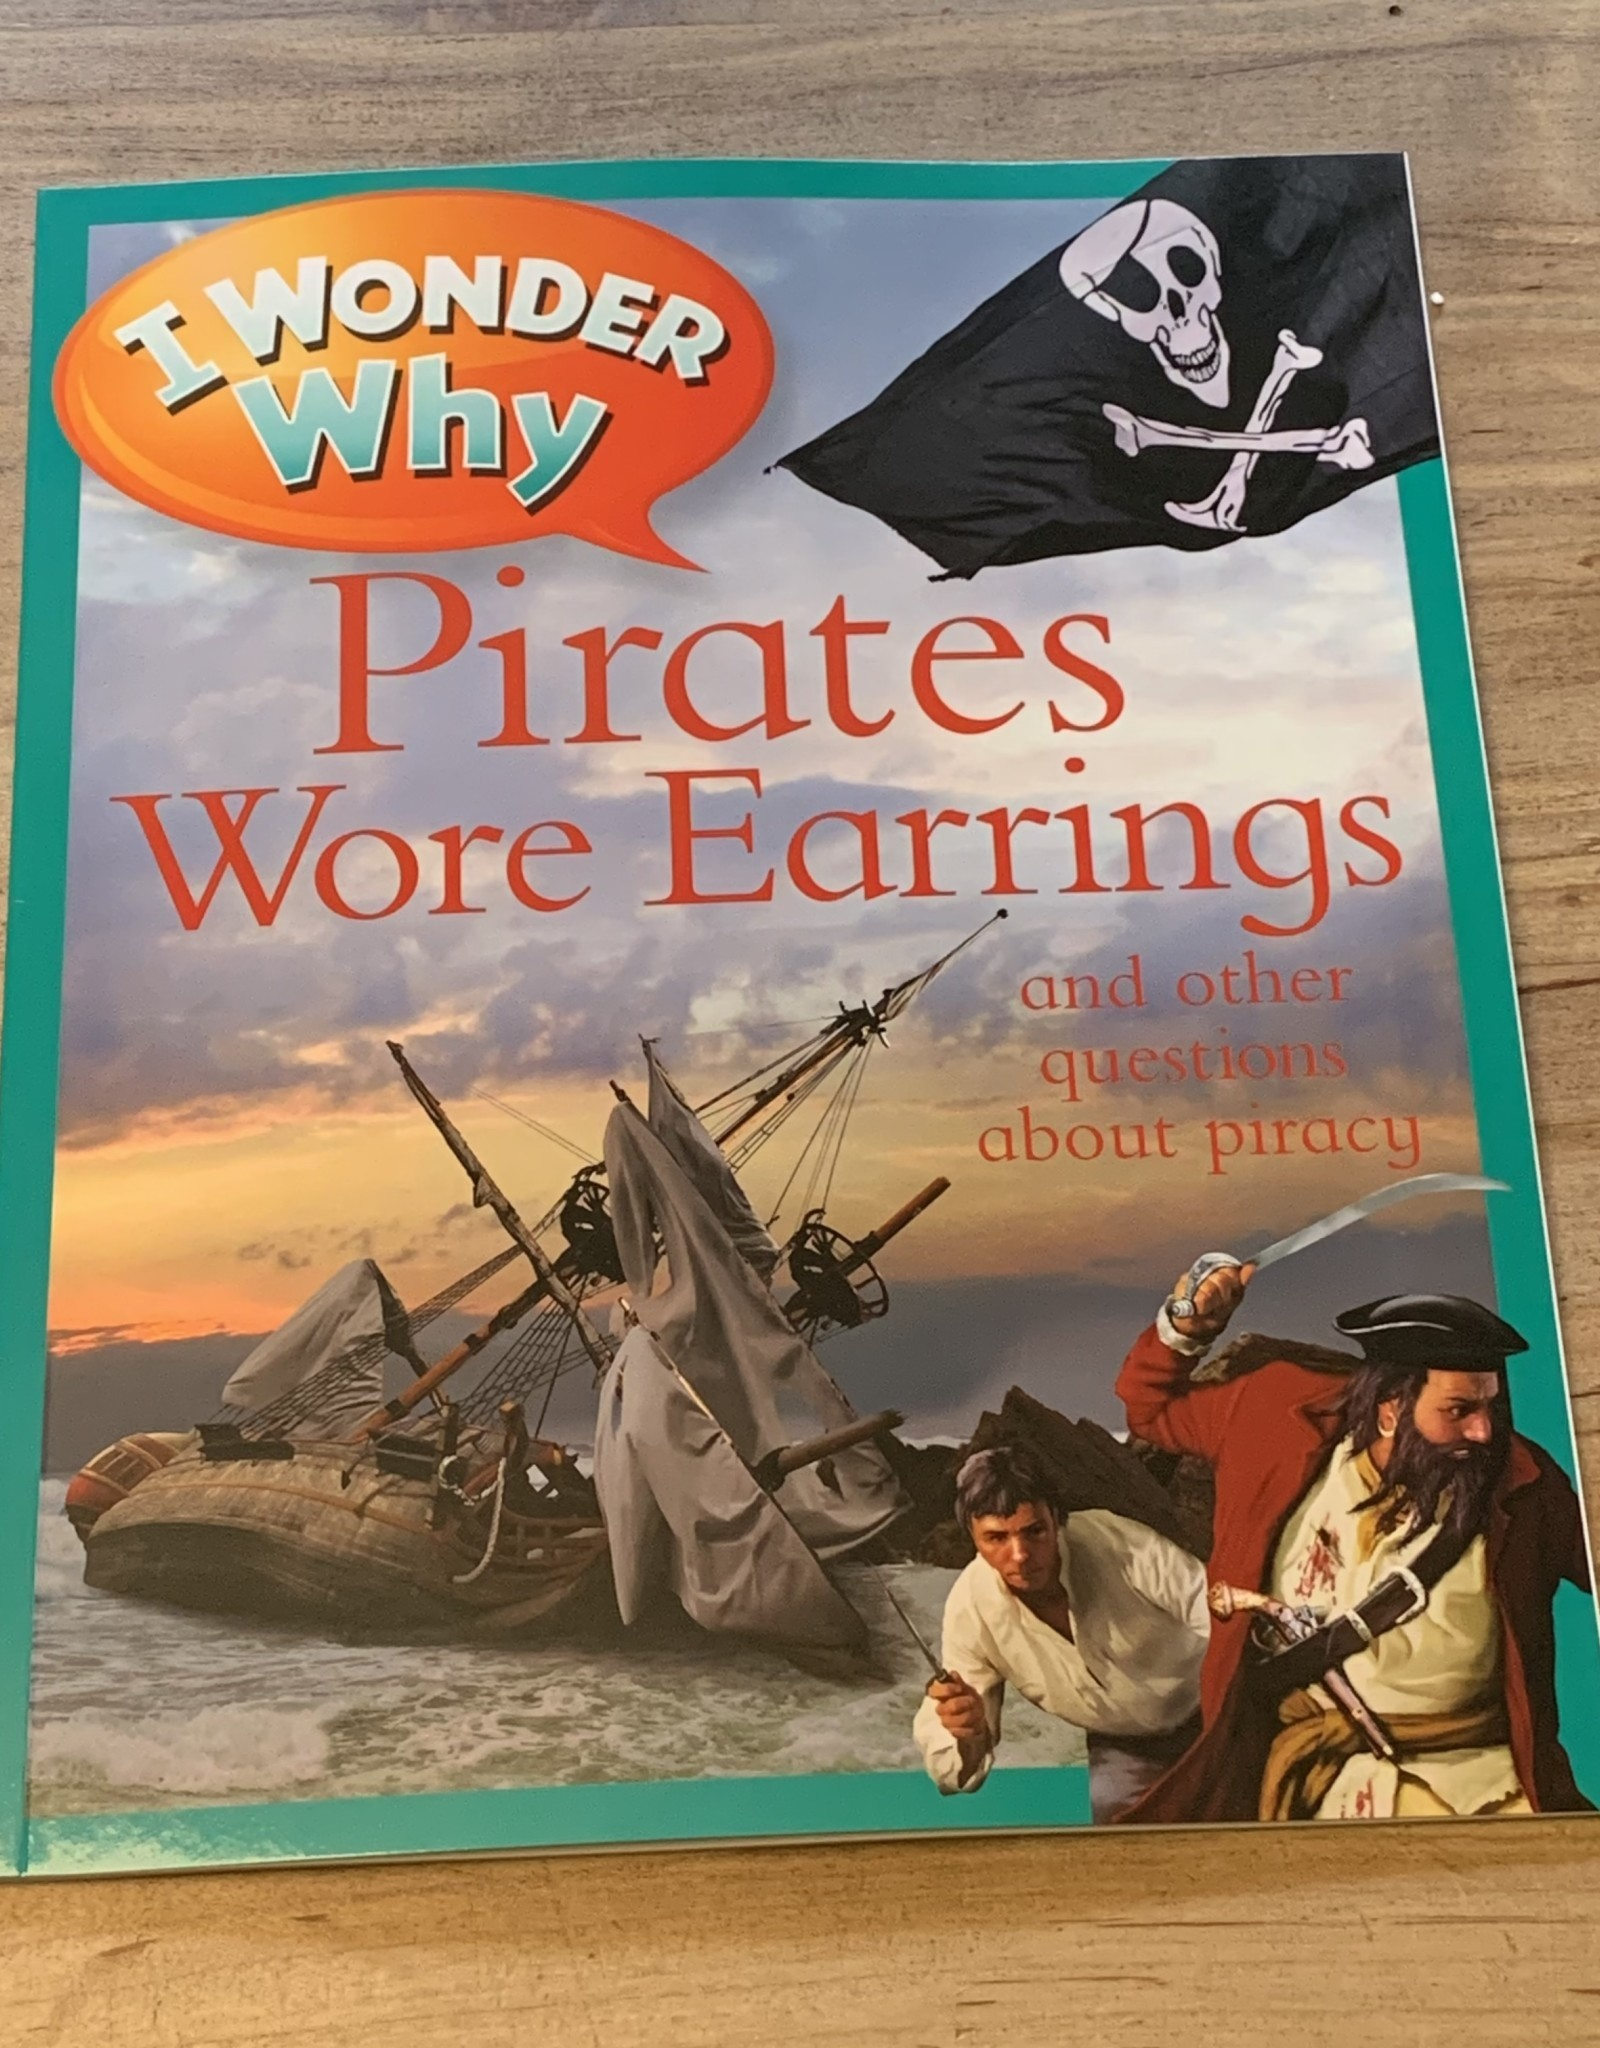 I WONDER WHY PIRATES